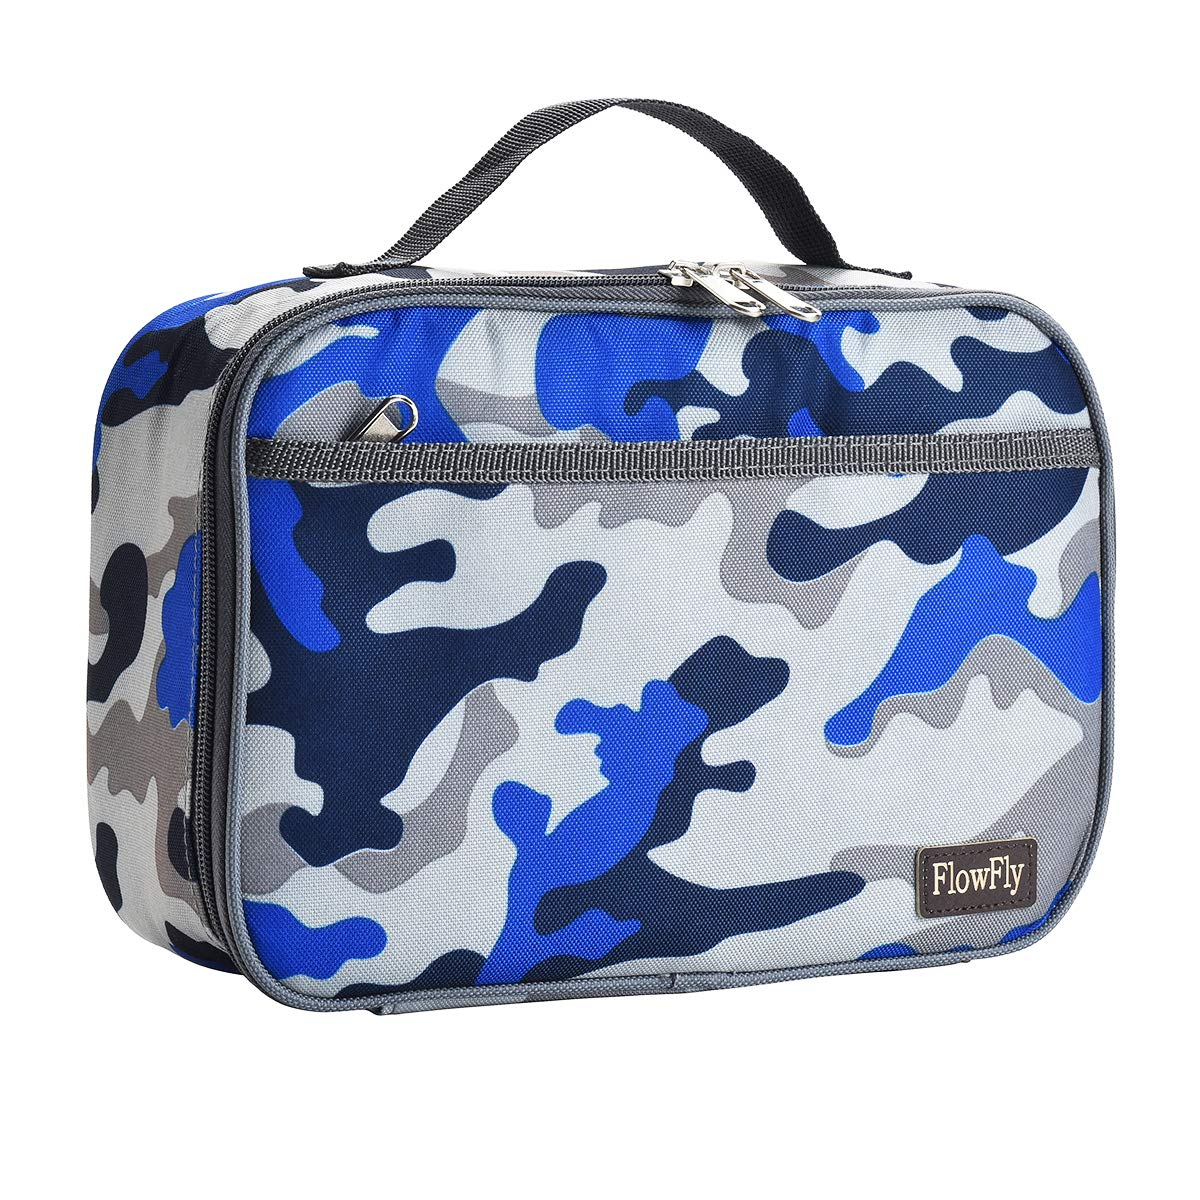 Kids Lunch box Insulated Soft Bag Mini Cooler Thermal Meal Tote Kit with Handle and Pocket for Girls, Boys by FlowFly,Blue Camo